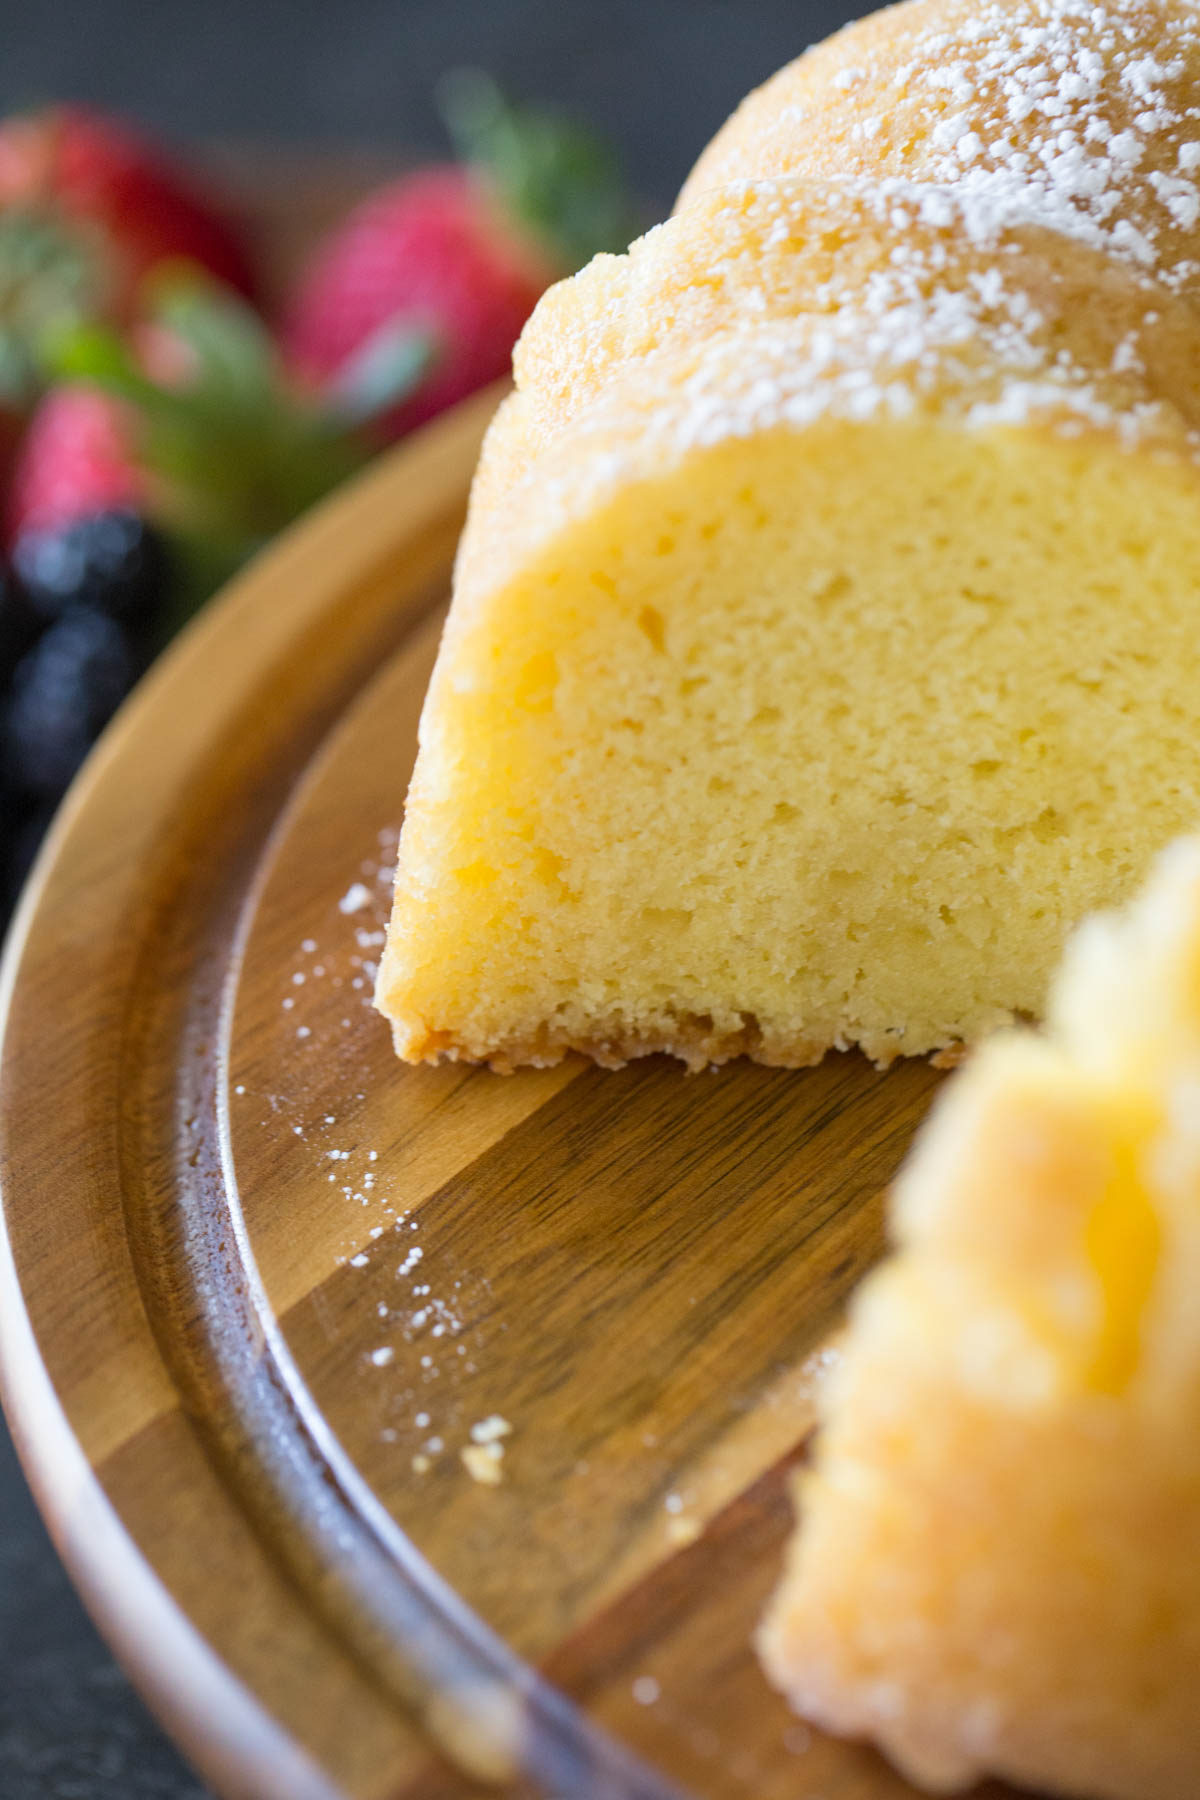 Close up view of Kentucky Butter Cake on wooden cake stand.